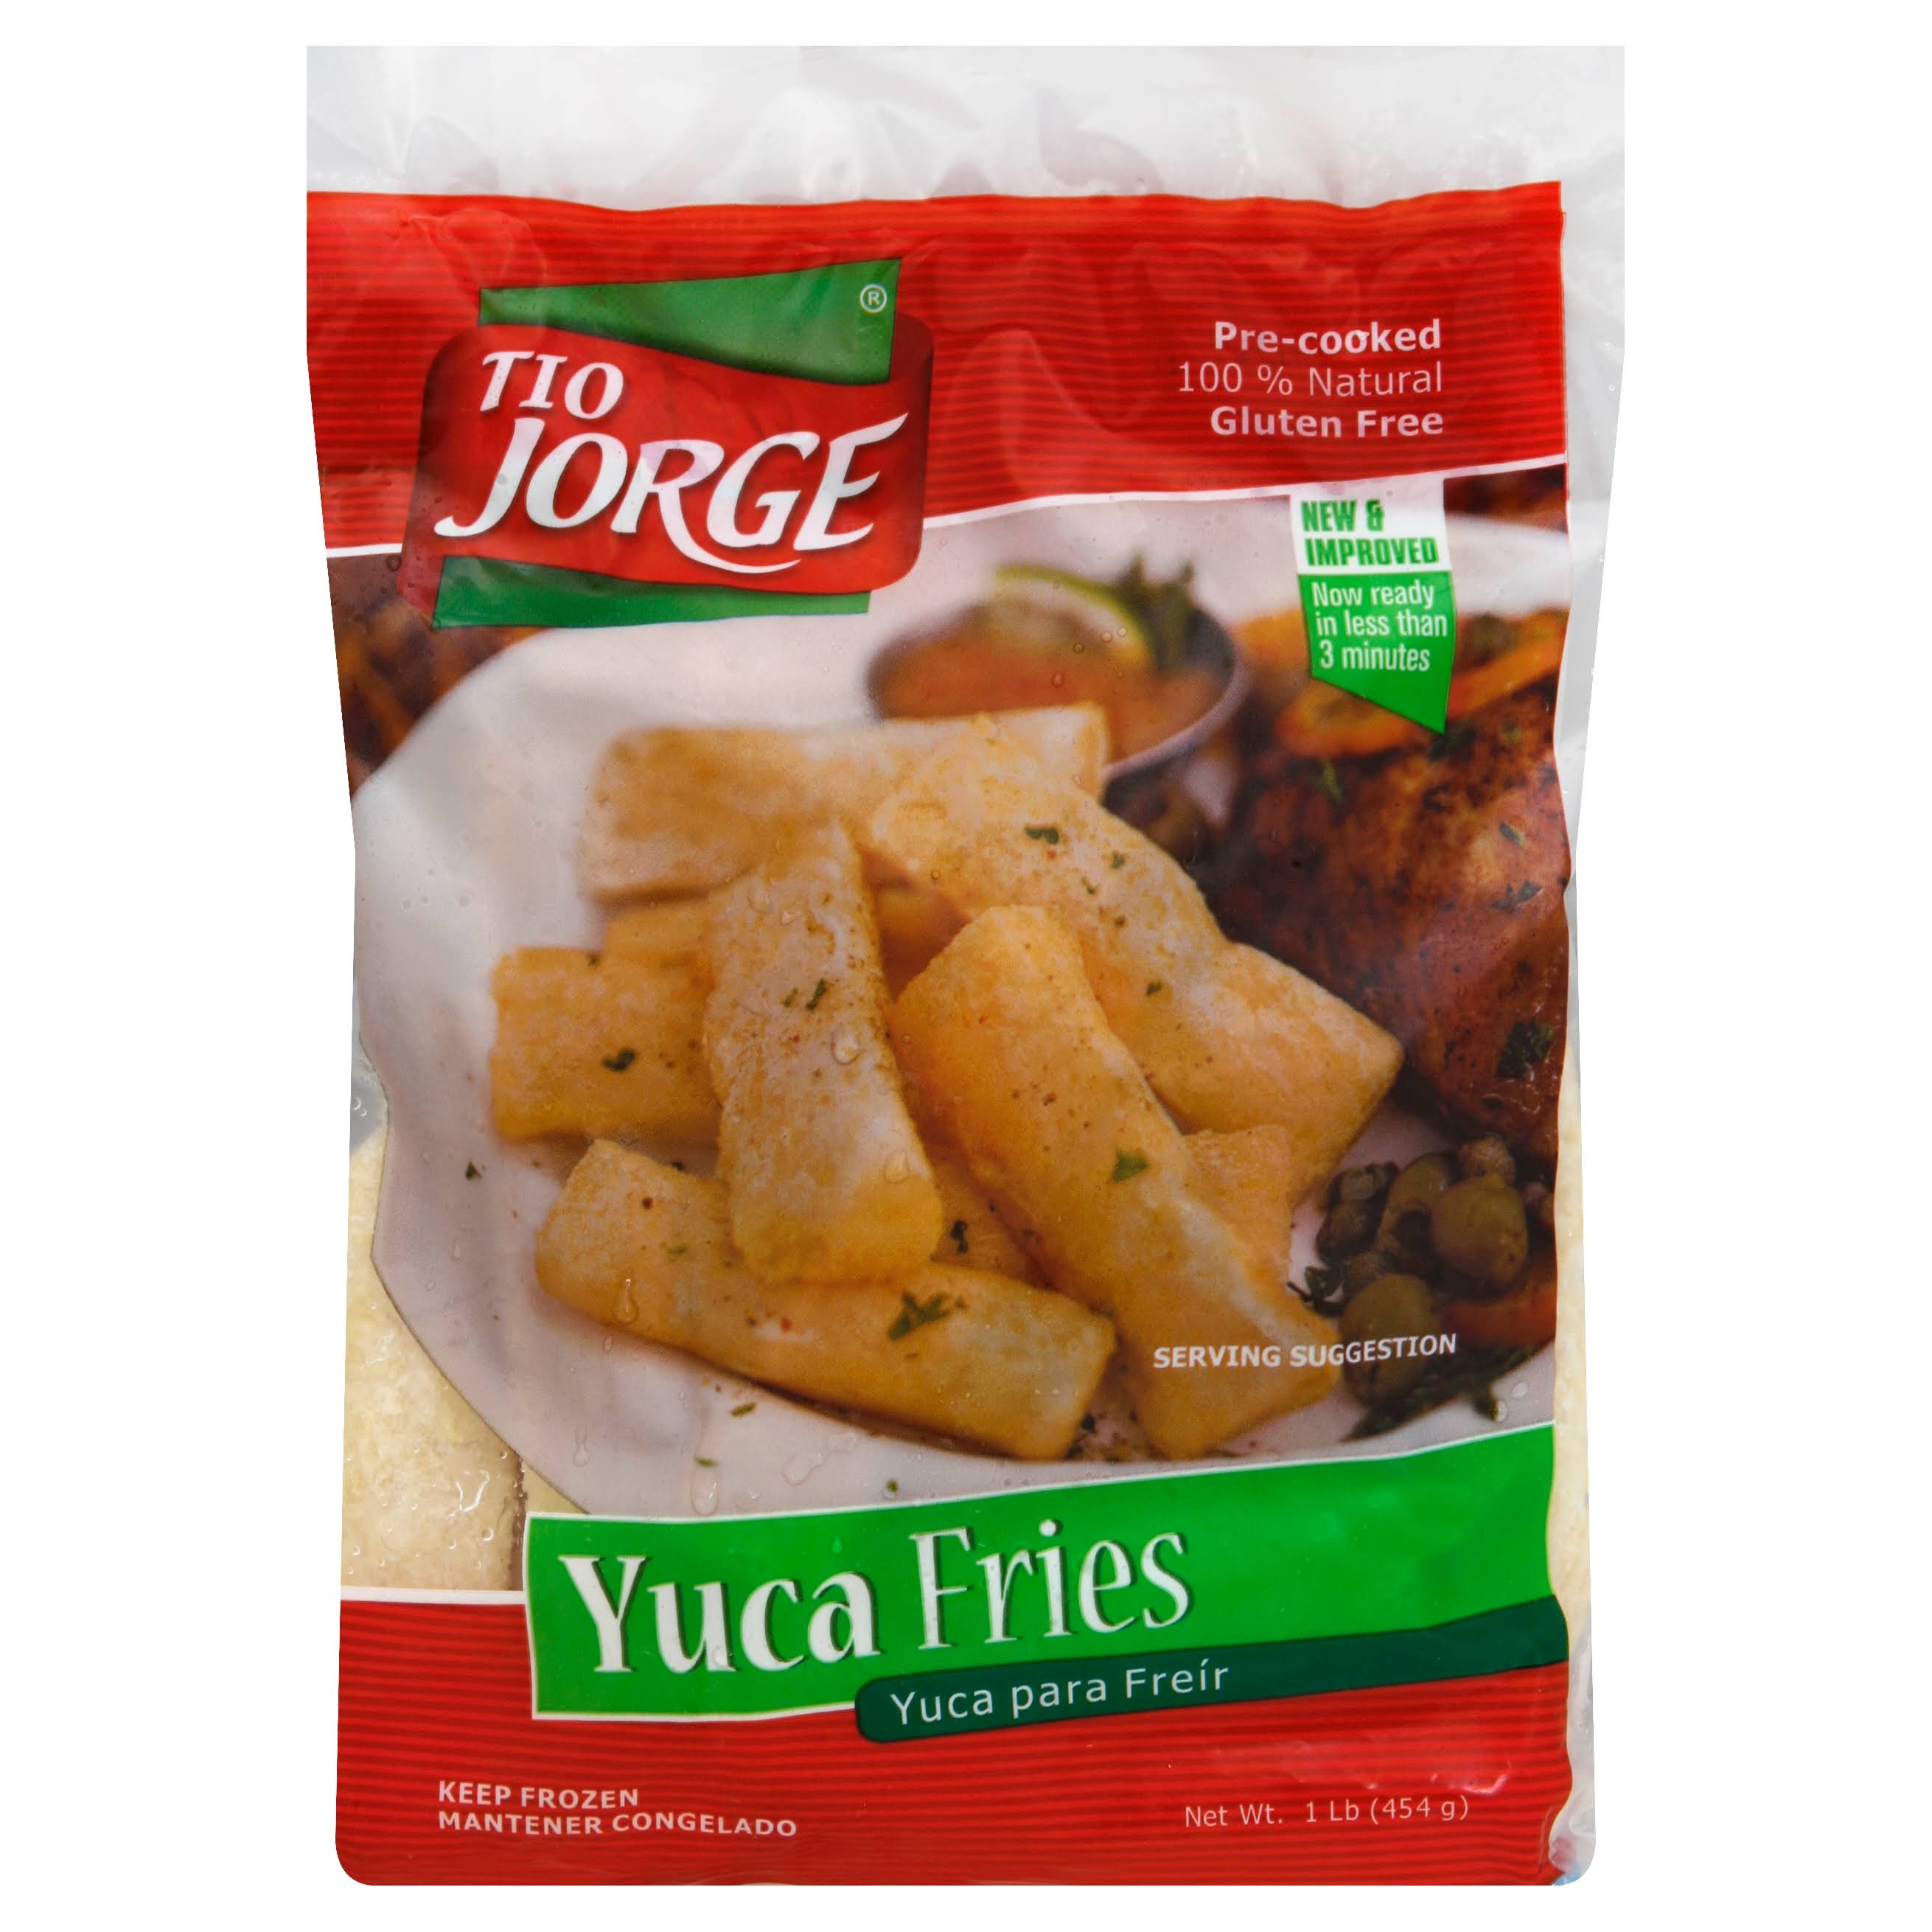 Tio Jorge Yuca Fries - 1 lb